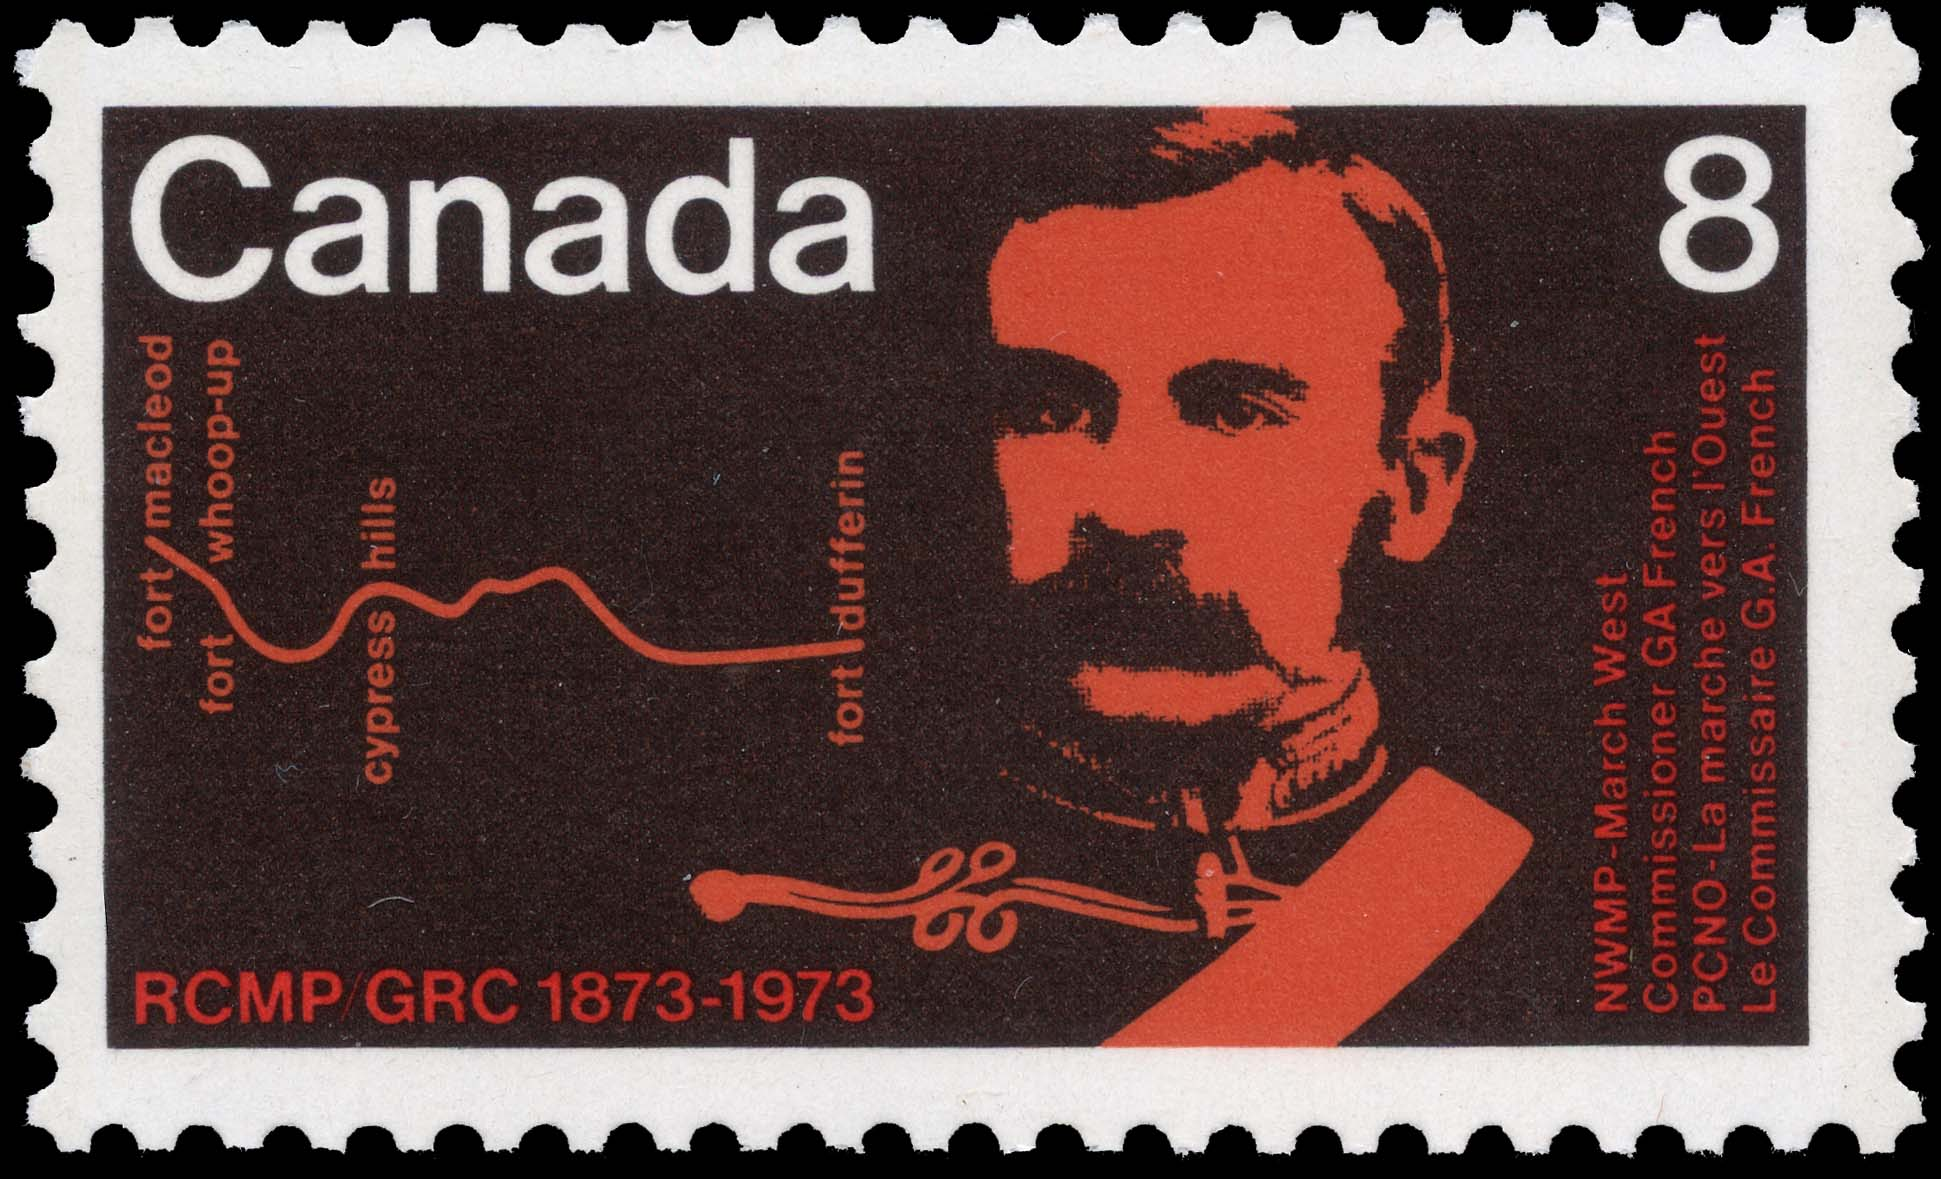 NWMP, March West, Commissioner G.A. French Canada Postage Stamp | RCMP, 1873-1973